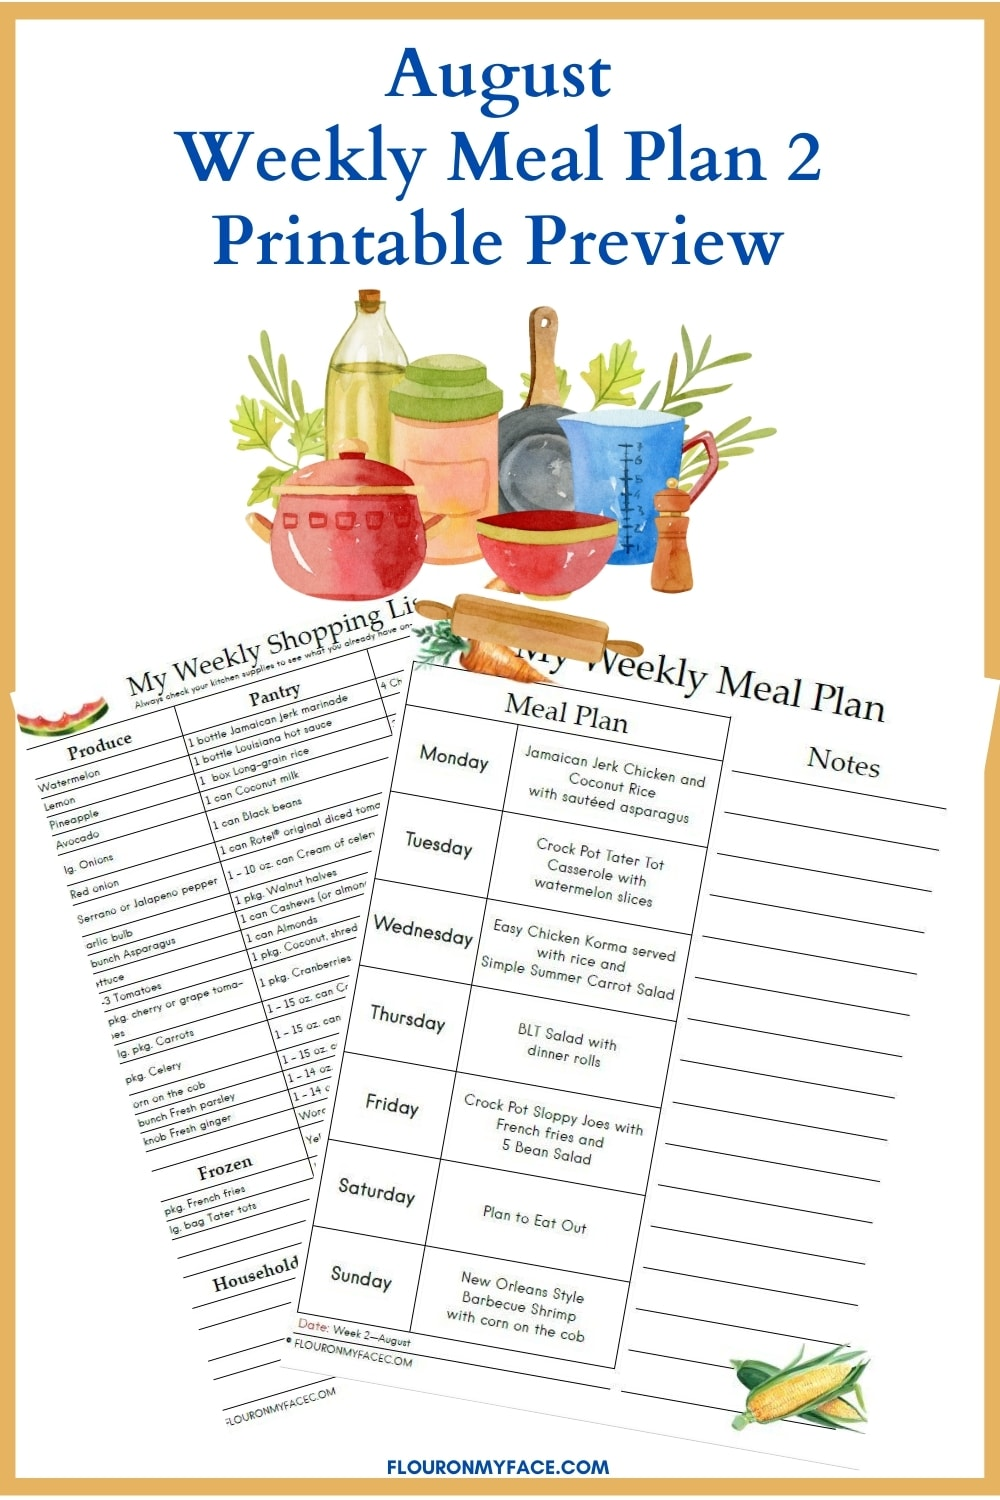 August Meal Plan 2 printable preview